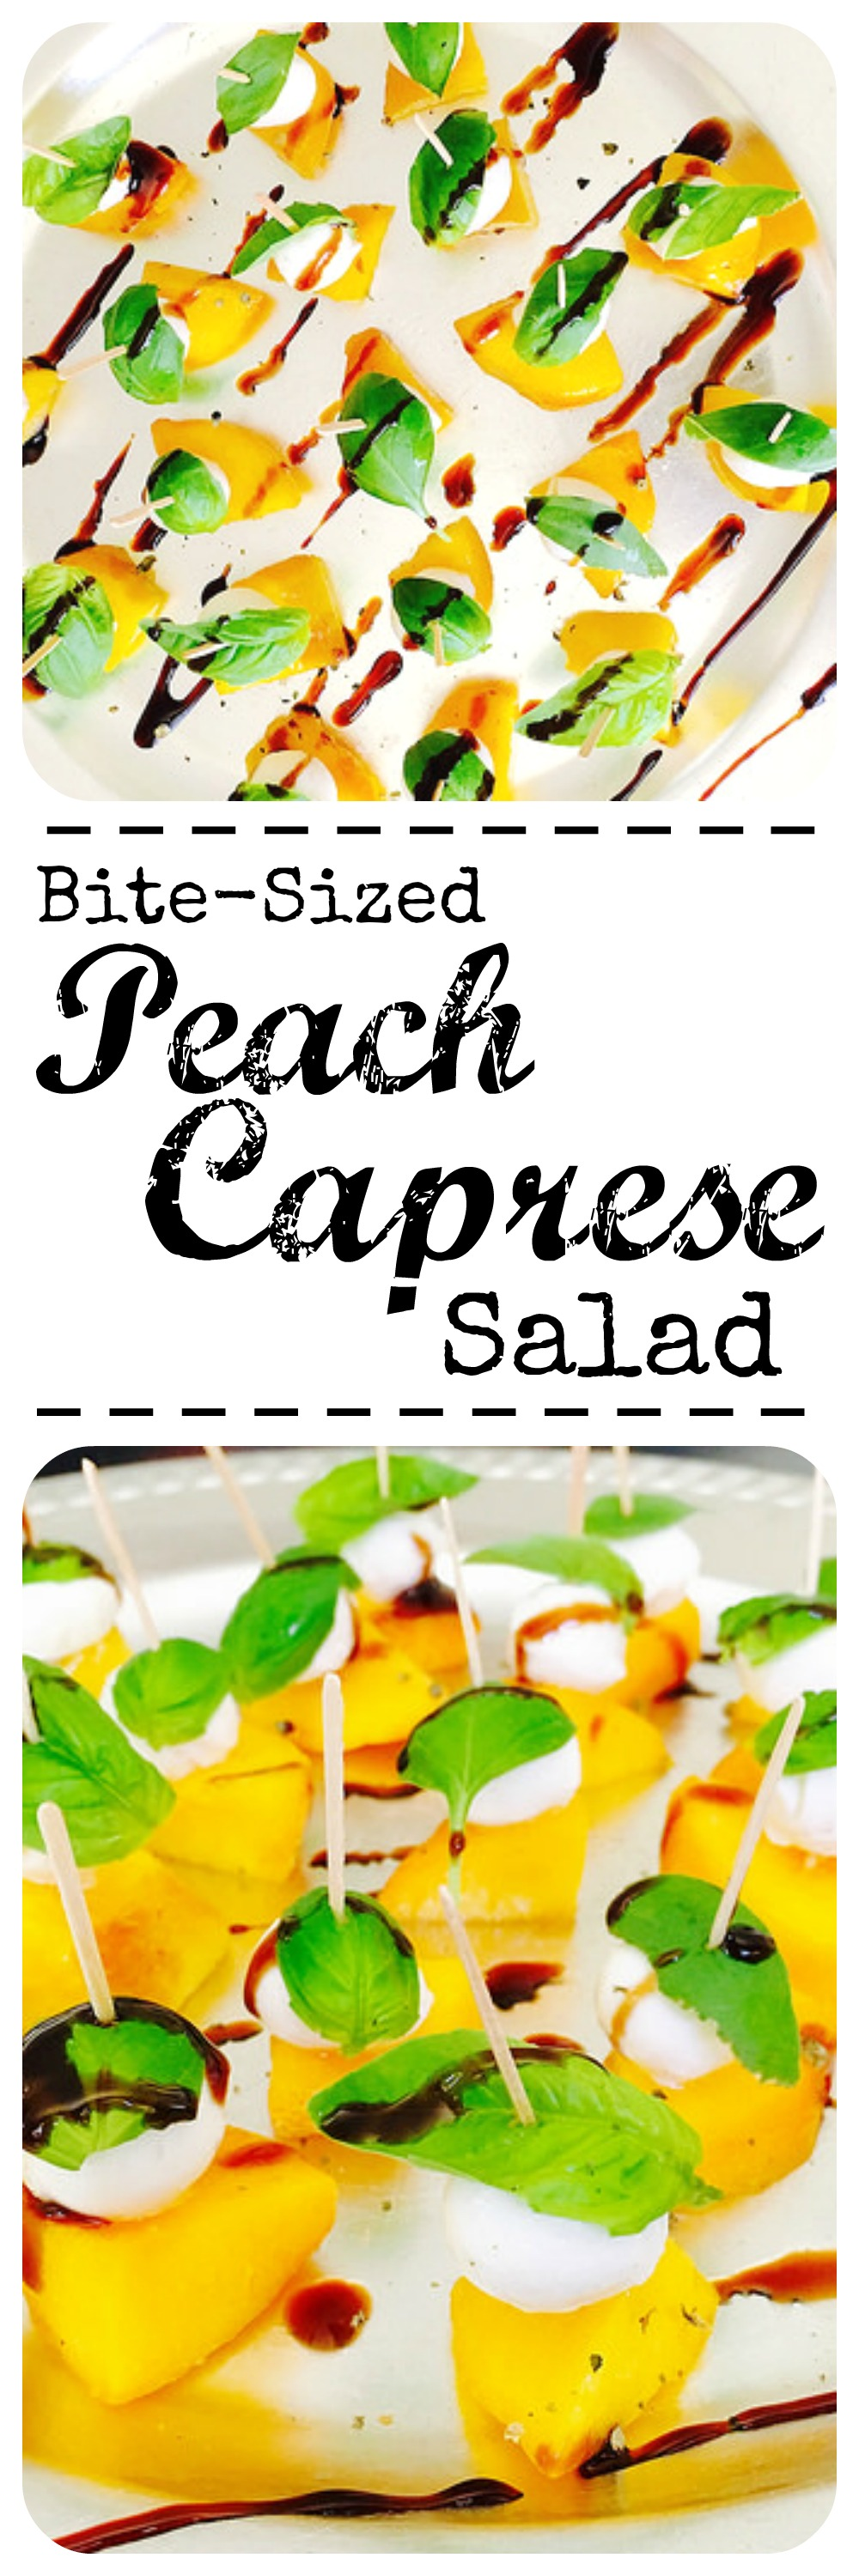 If you're in need of a no-fuss hors d'oeuvre this summer, you came to the right place. Check out this Bite-Sized Peach Caprese Salad.